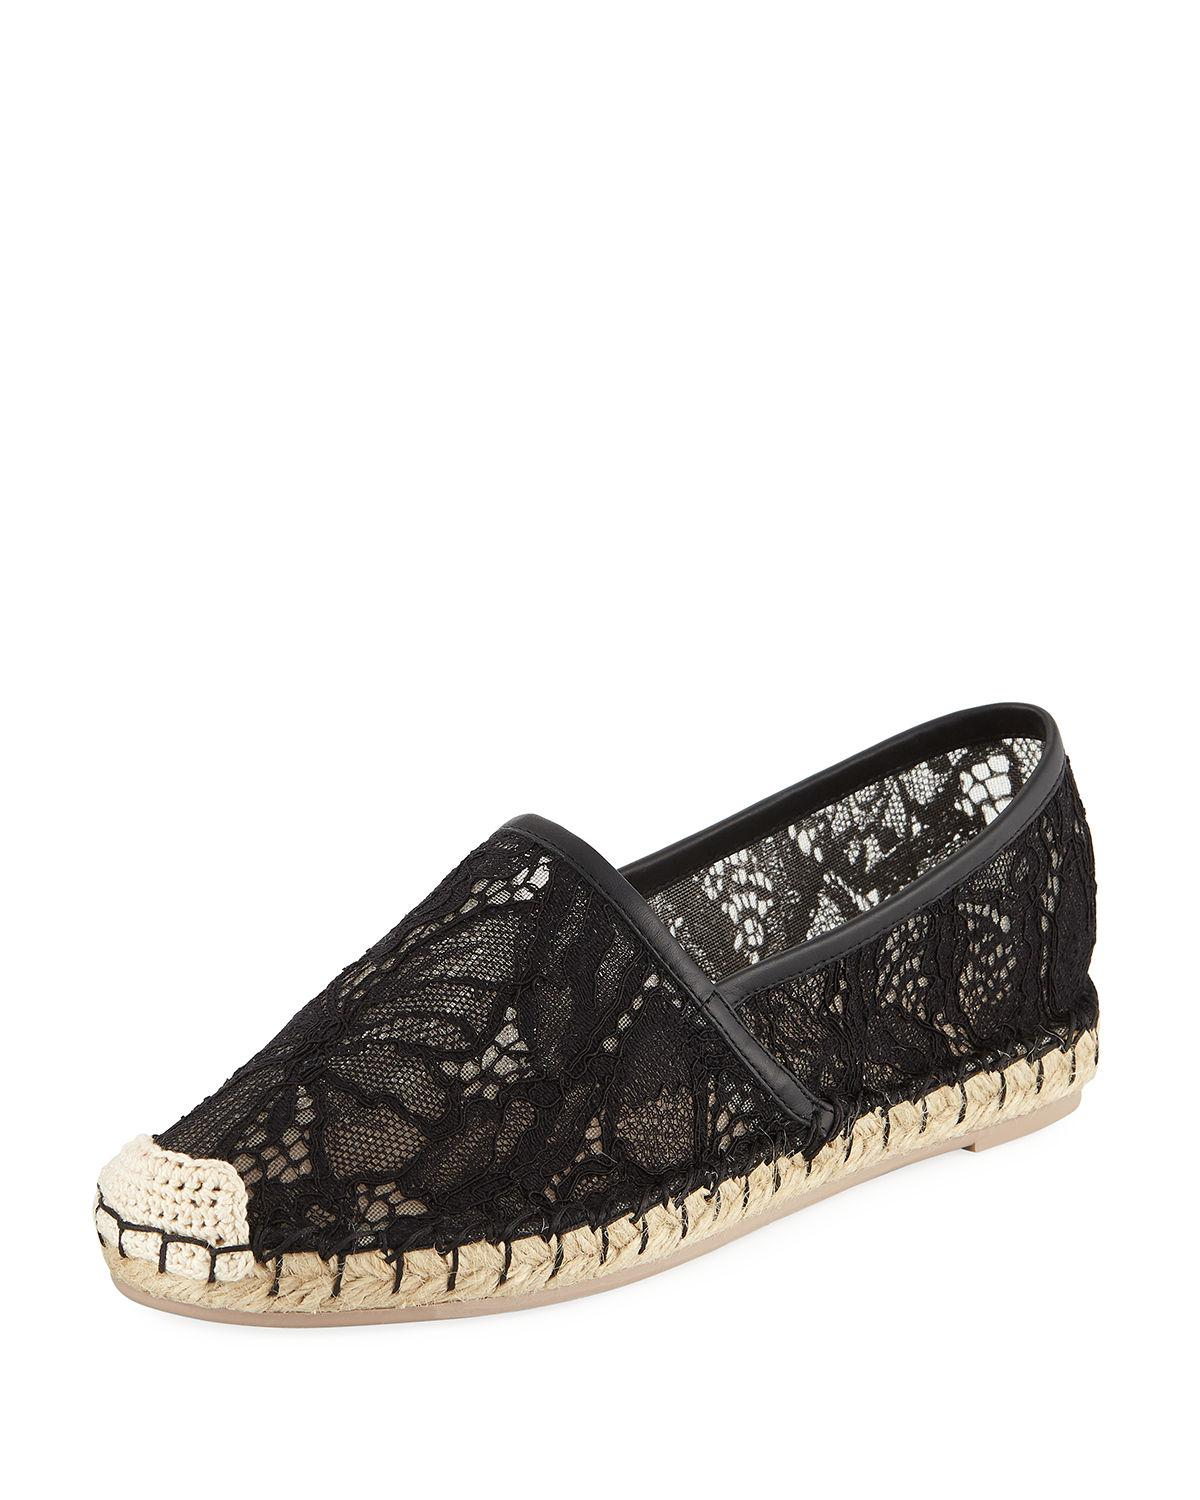 Valentino Floral Suede Flats cheap find great sale Manchester new cheap price discount best store to get discount nicekicks 1YRQqi